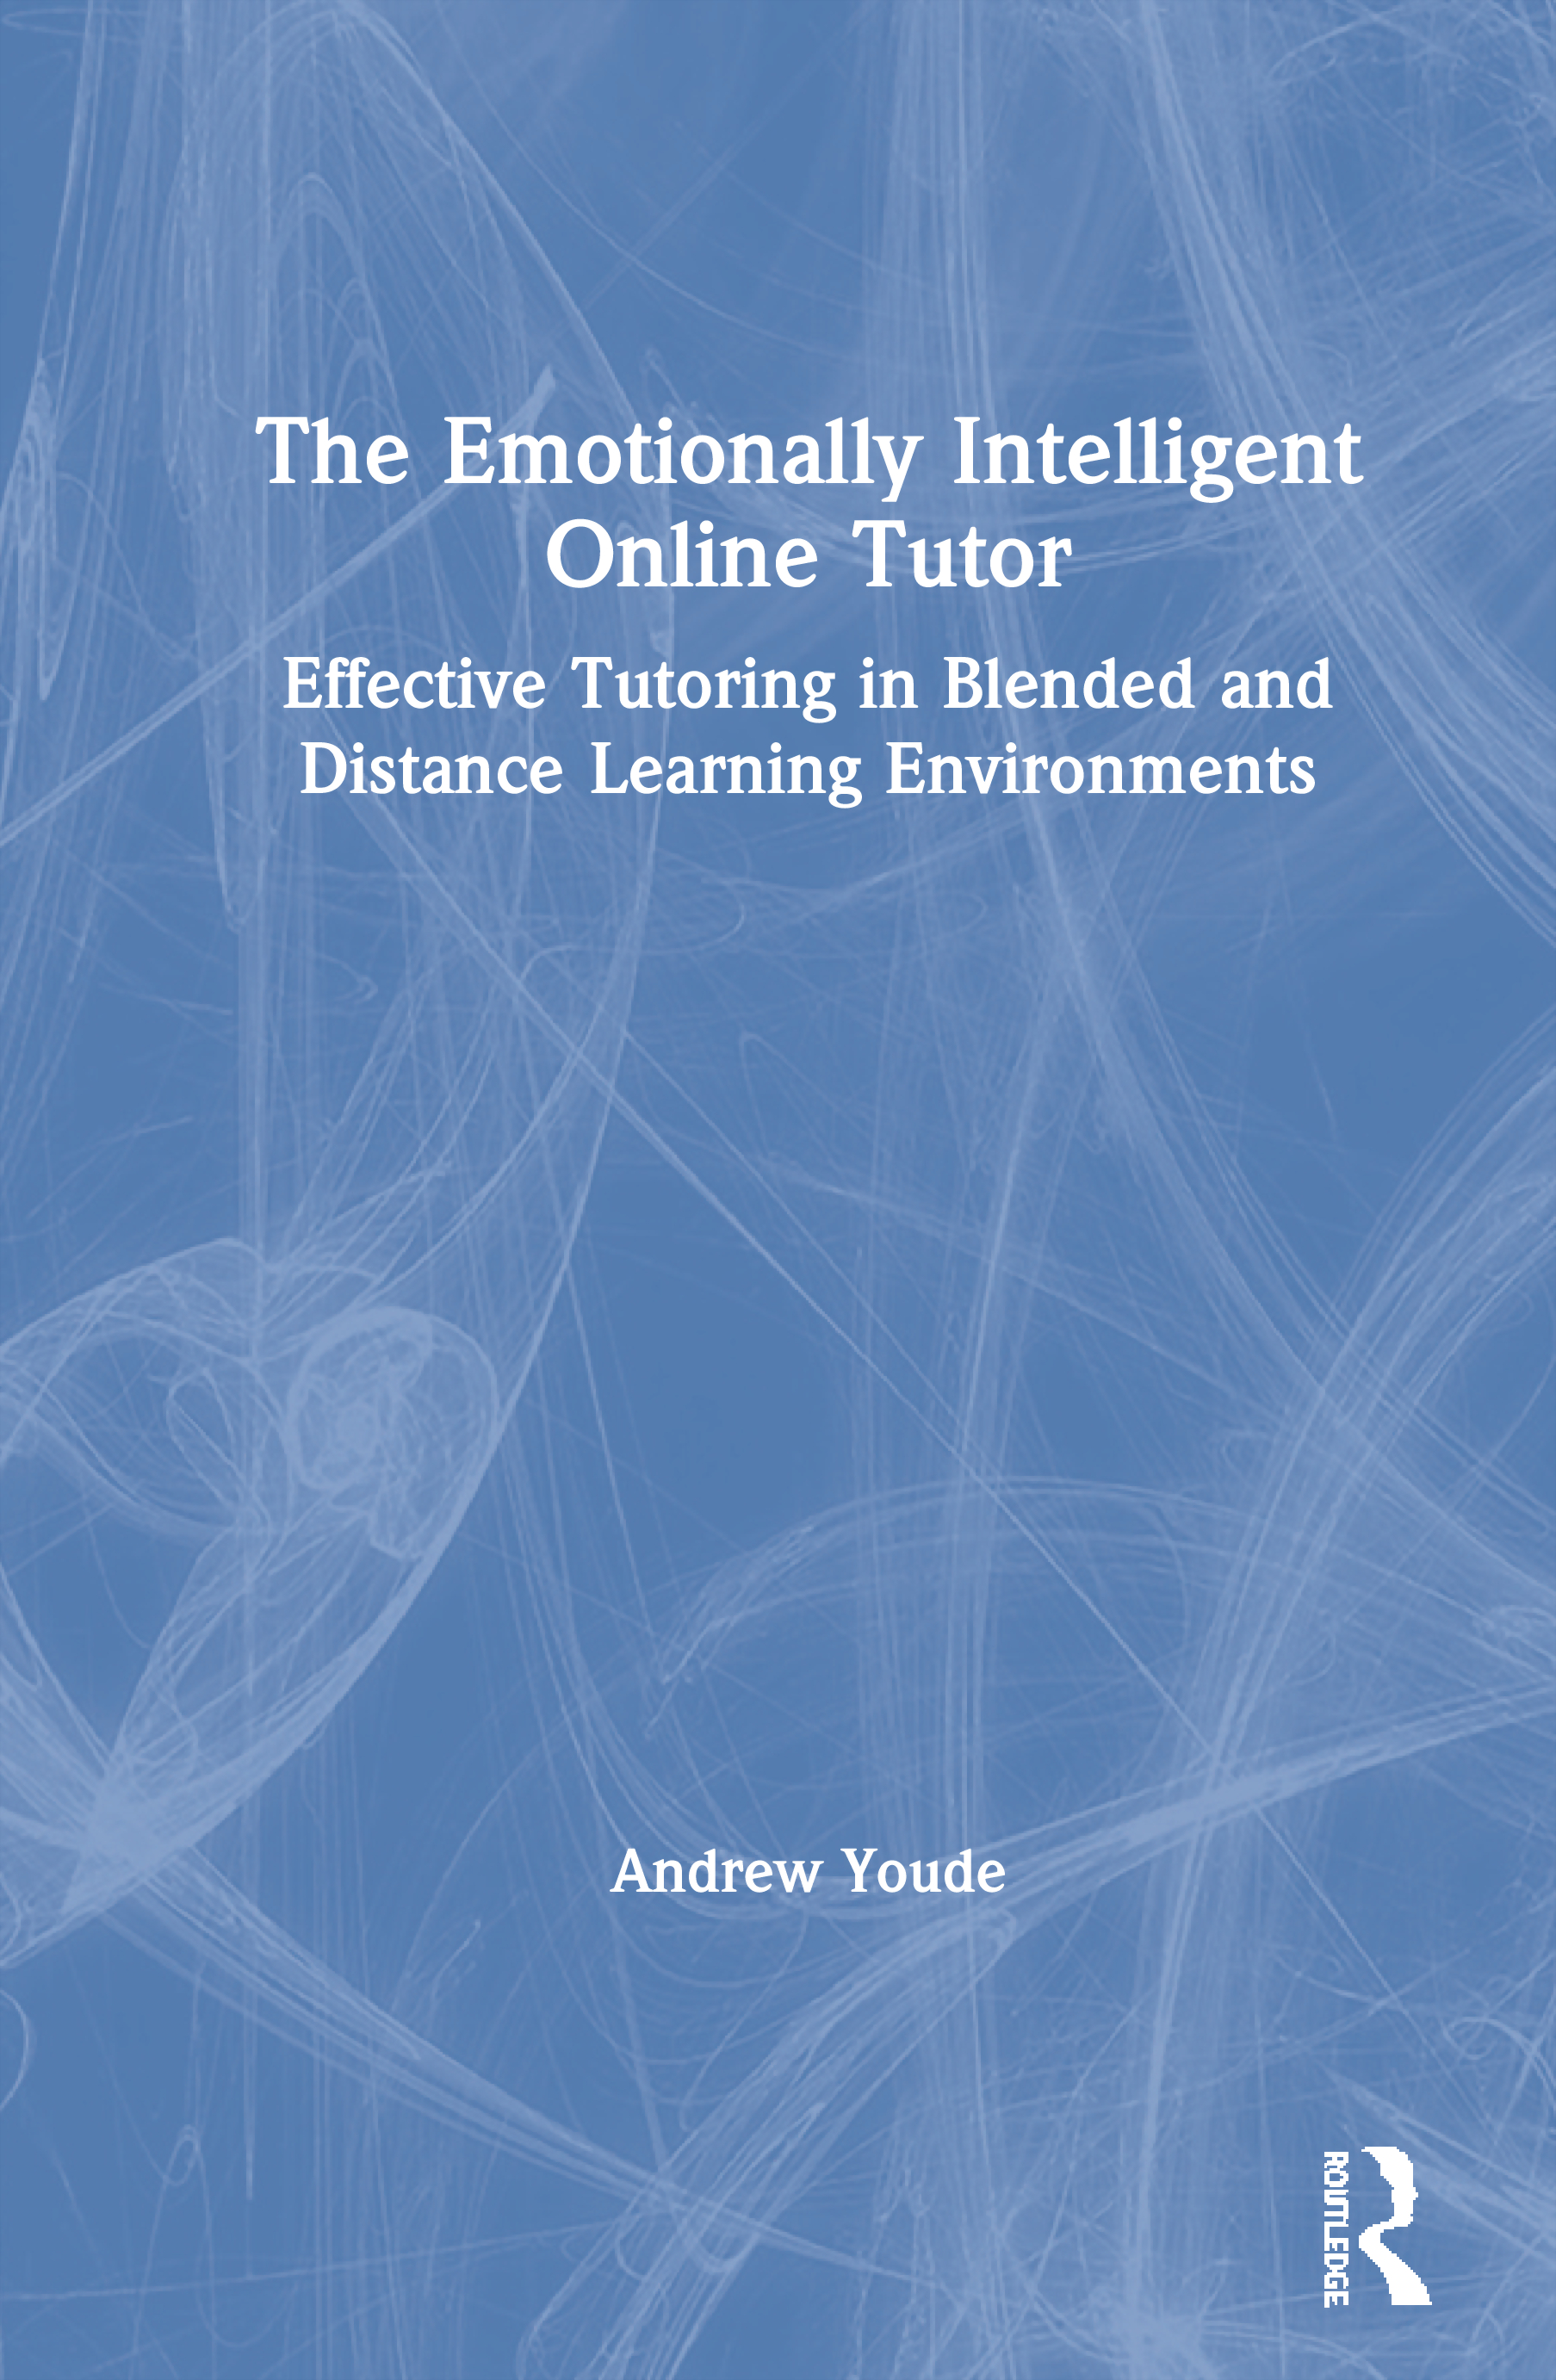 The Emotionally Intelligent Online Tutor: Effective Tutoring in Blended and Distance Learning Environments book cover